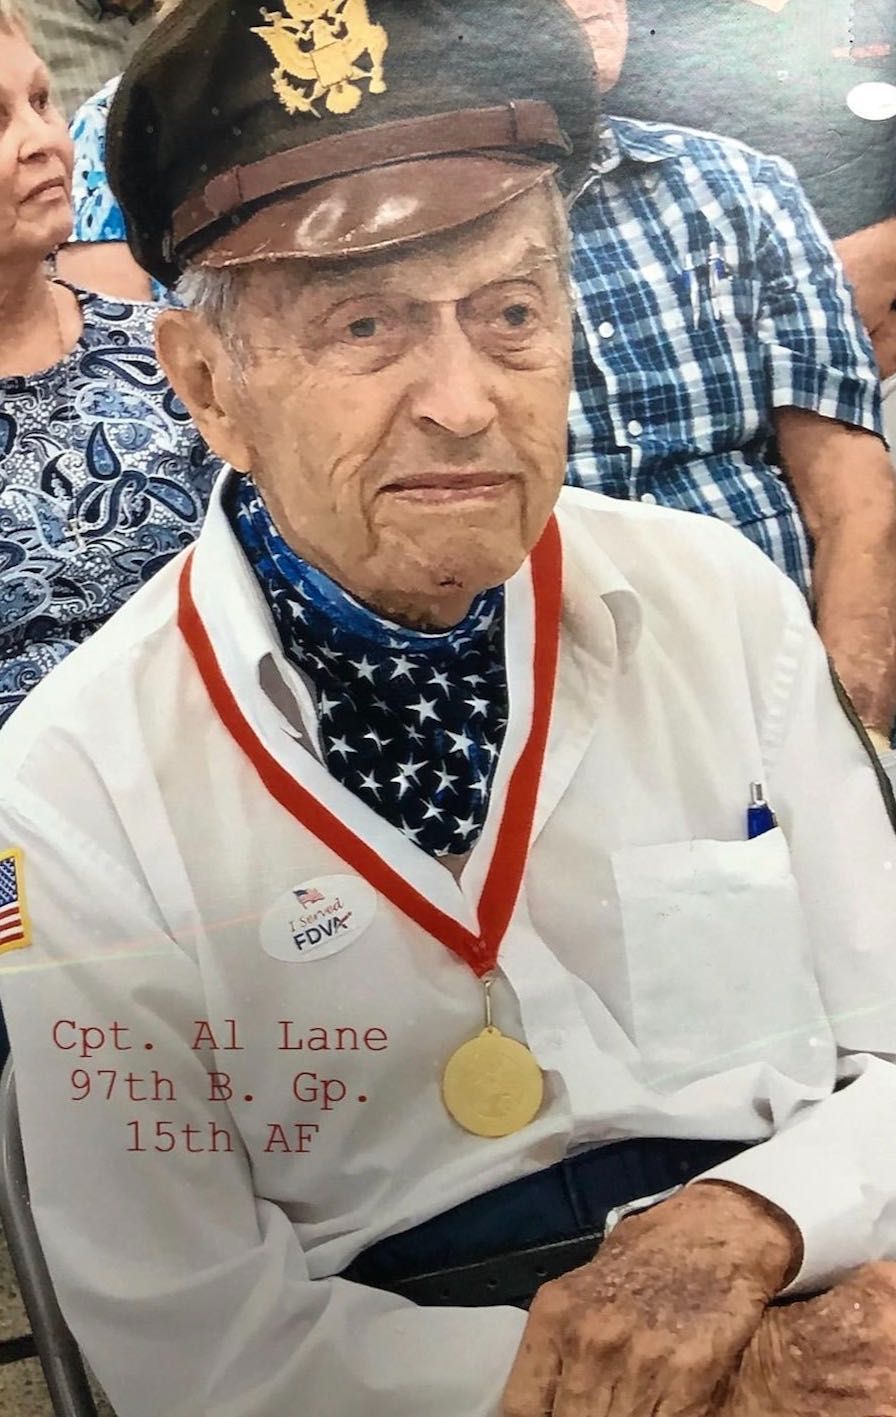 Albert Lane, a WWII vet and recent convert to The Church of Jesus Christ of Latter-day Saints.